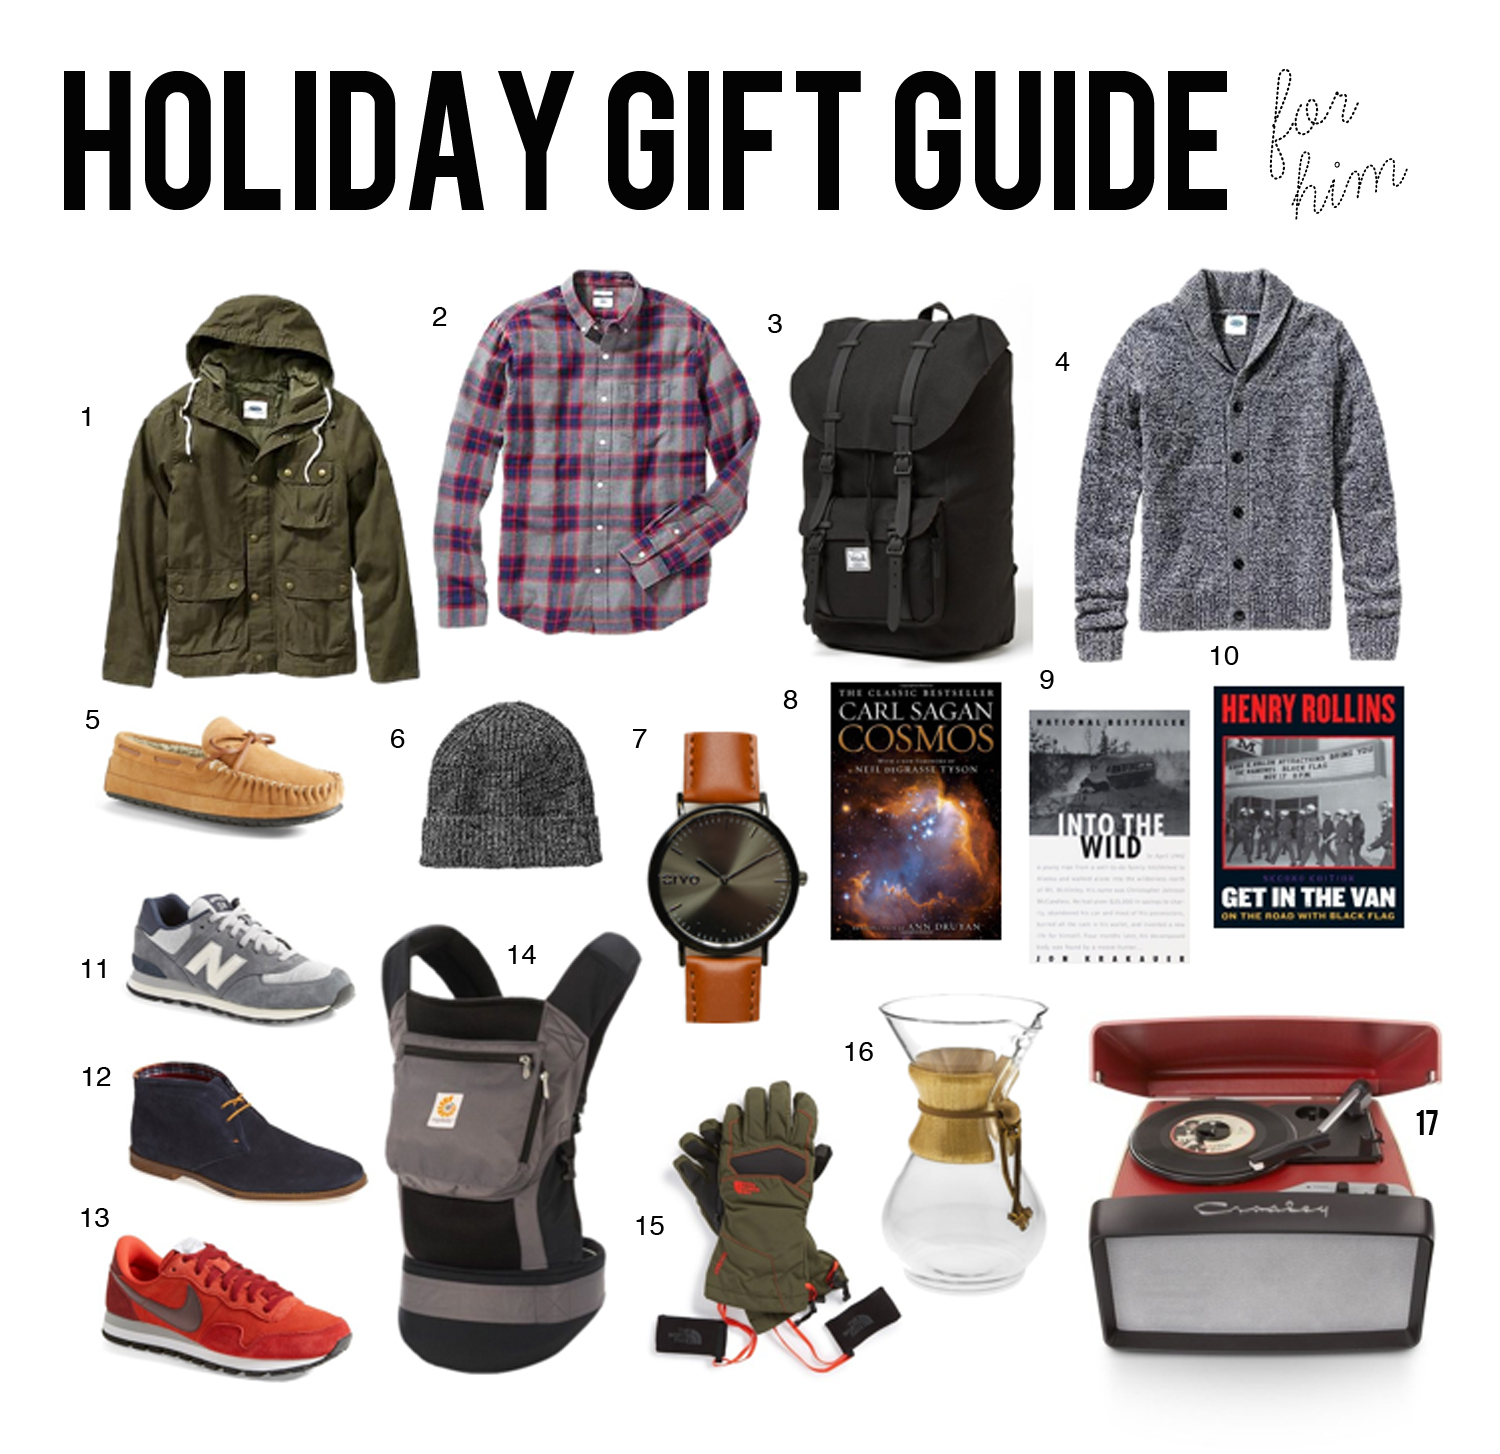 Gifts For Architects The Ultimate Guide: Sometimes Sweet: Holiday Gift Guide...For Him